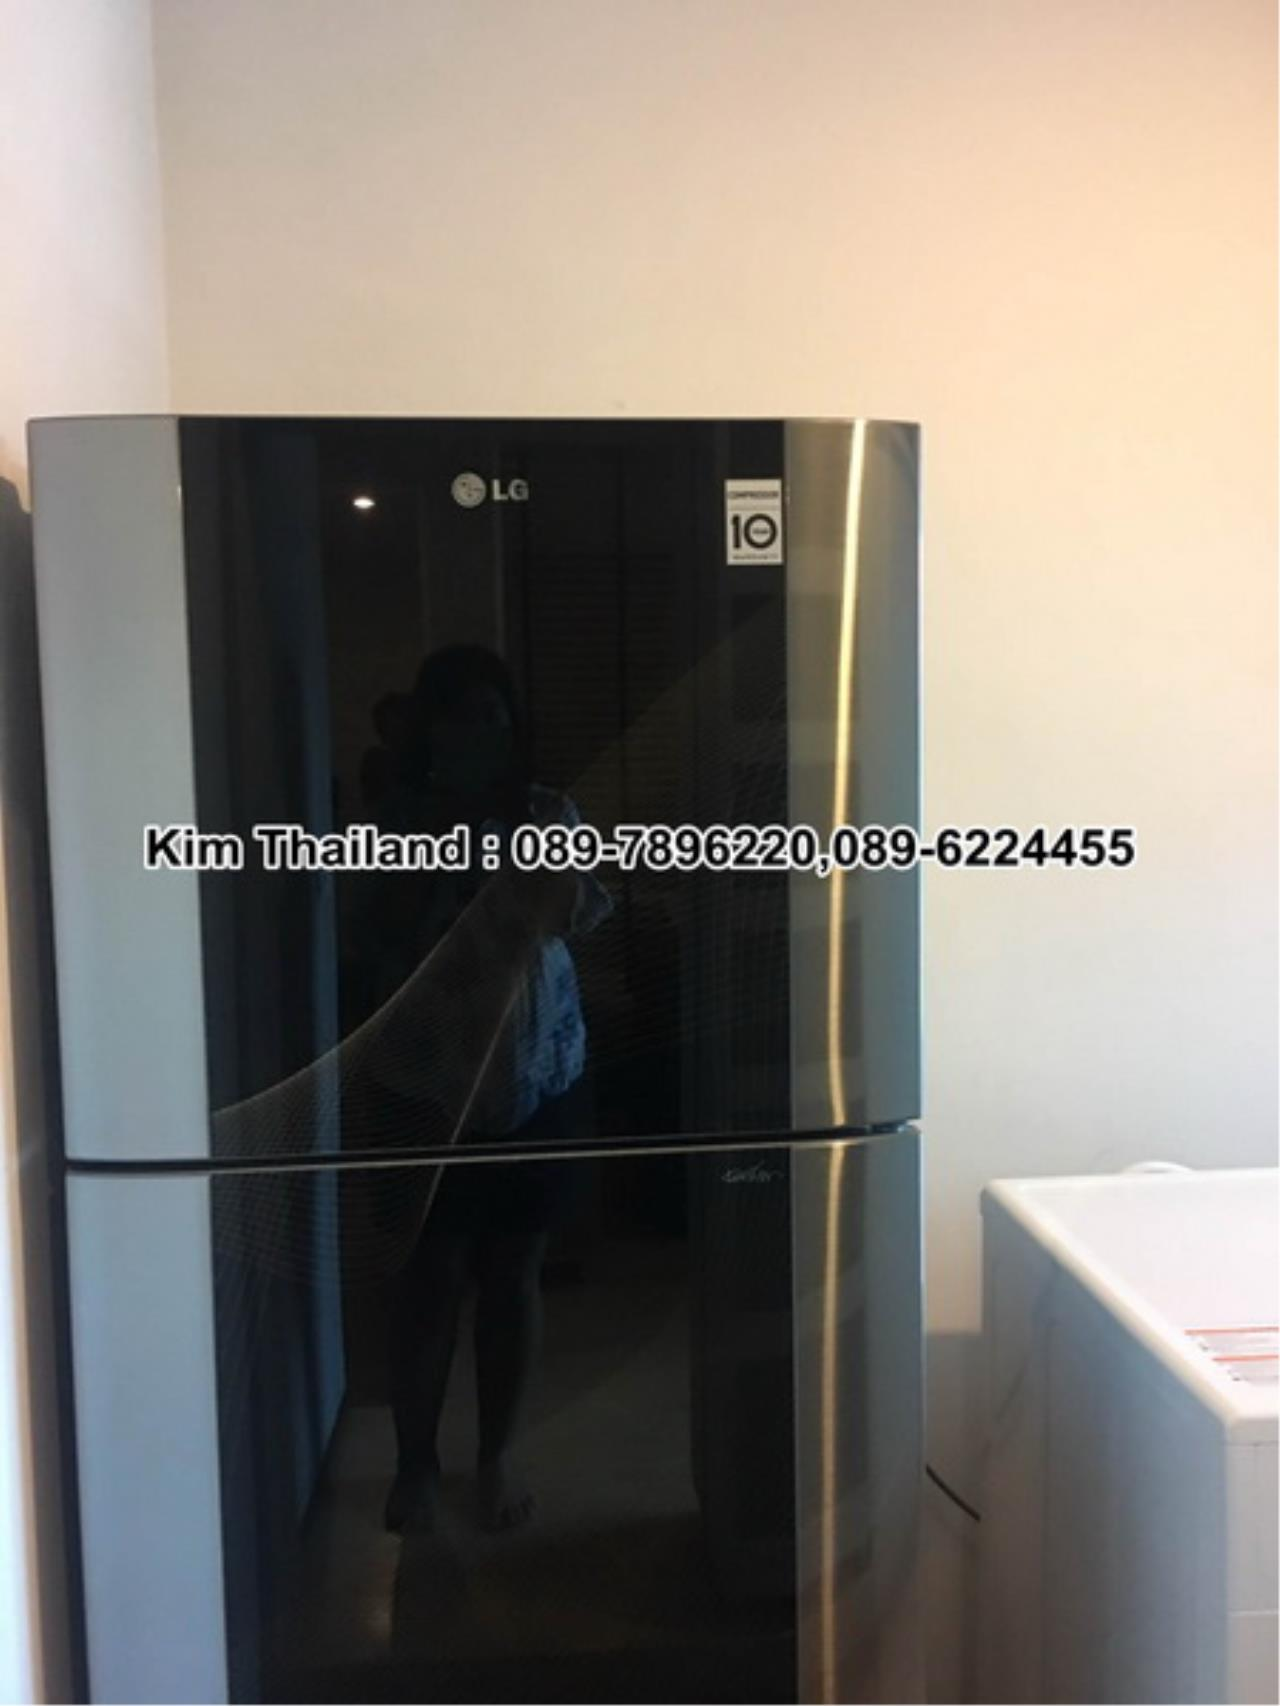 BKKcondorental Agency's For rent, Condo The Parkland Grand Asoke-Petchaburi., Area 35 sq.m. 1 bedroom. Rental 16,500 THB per month. 4